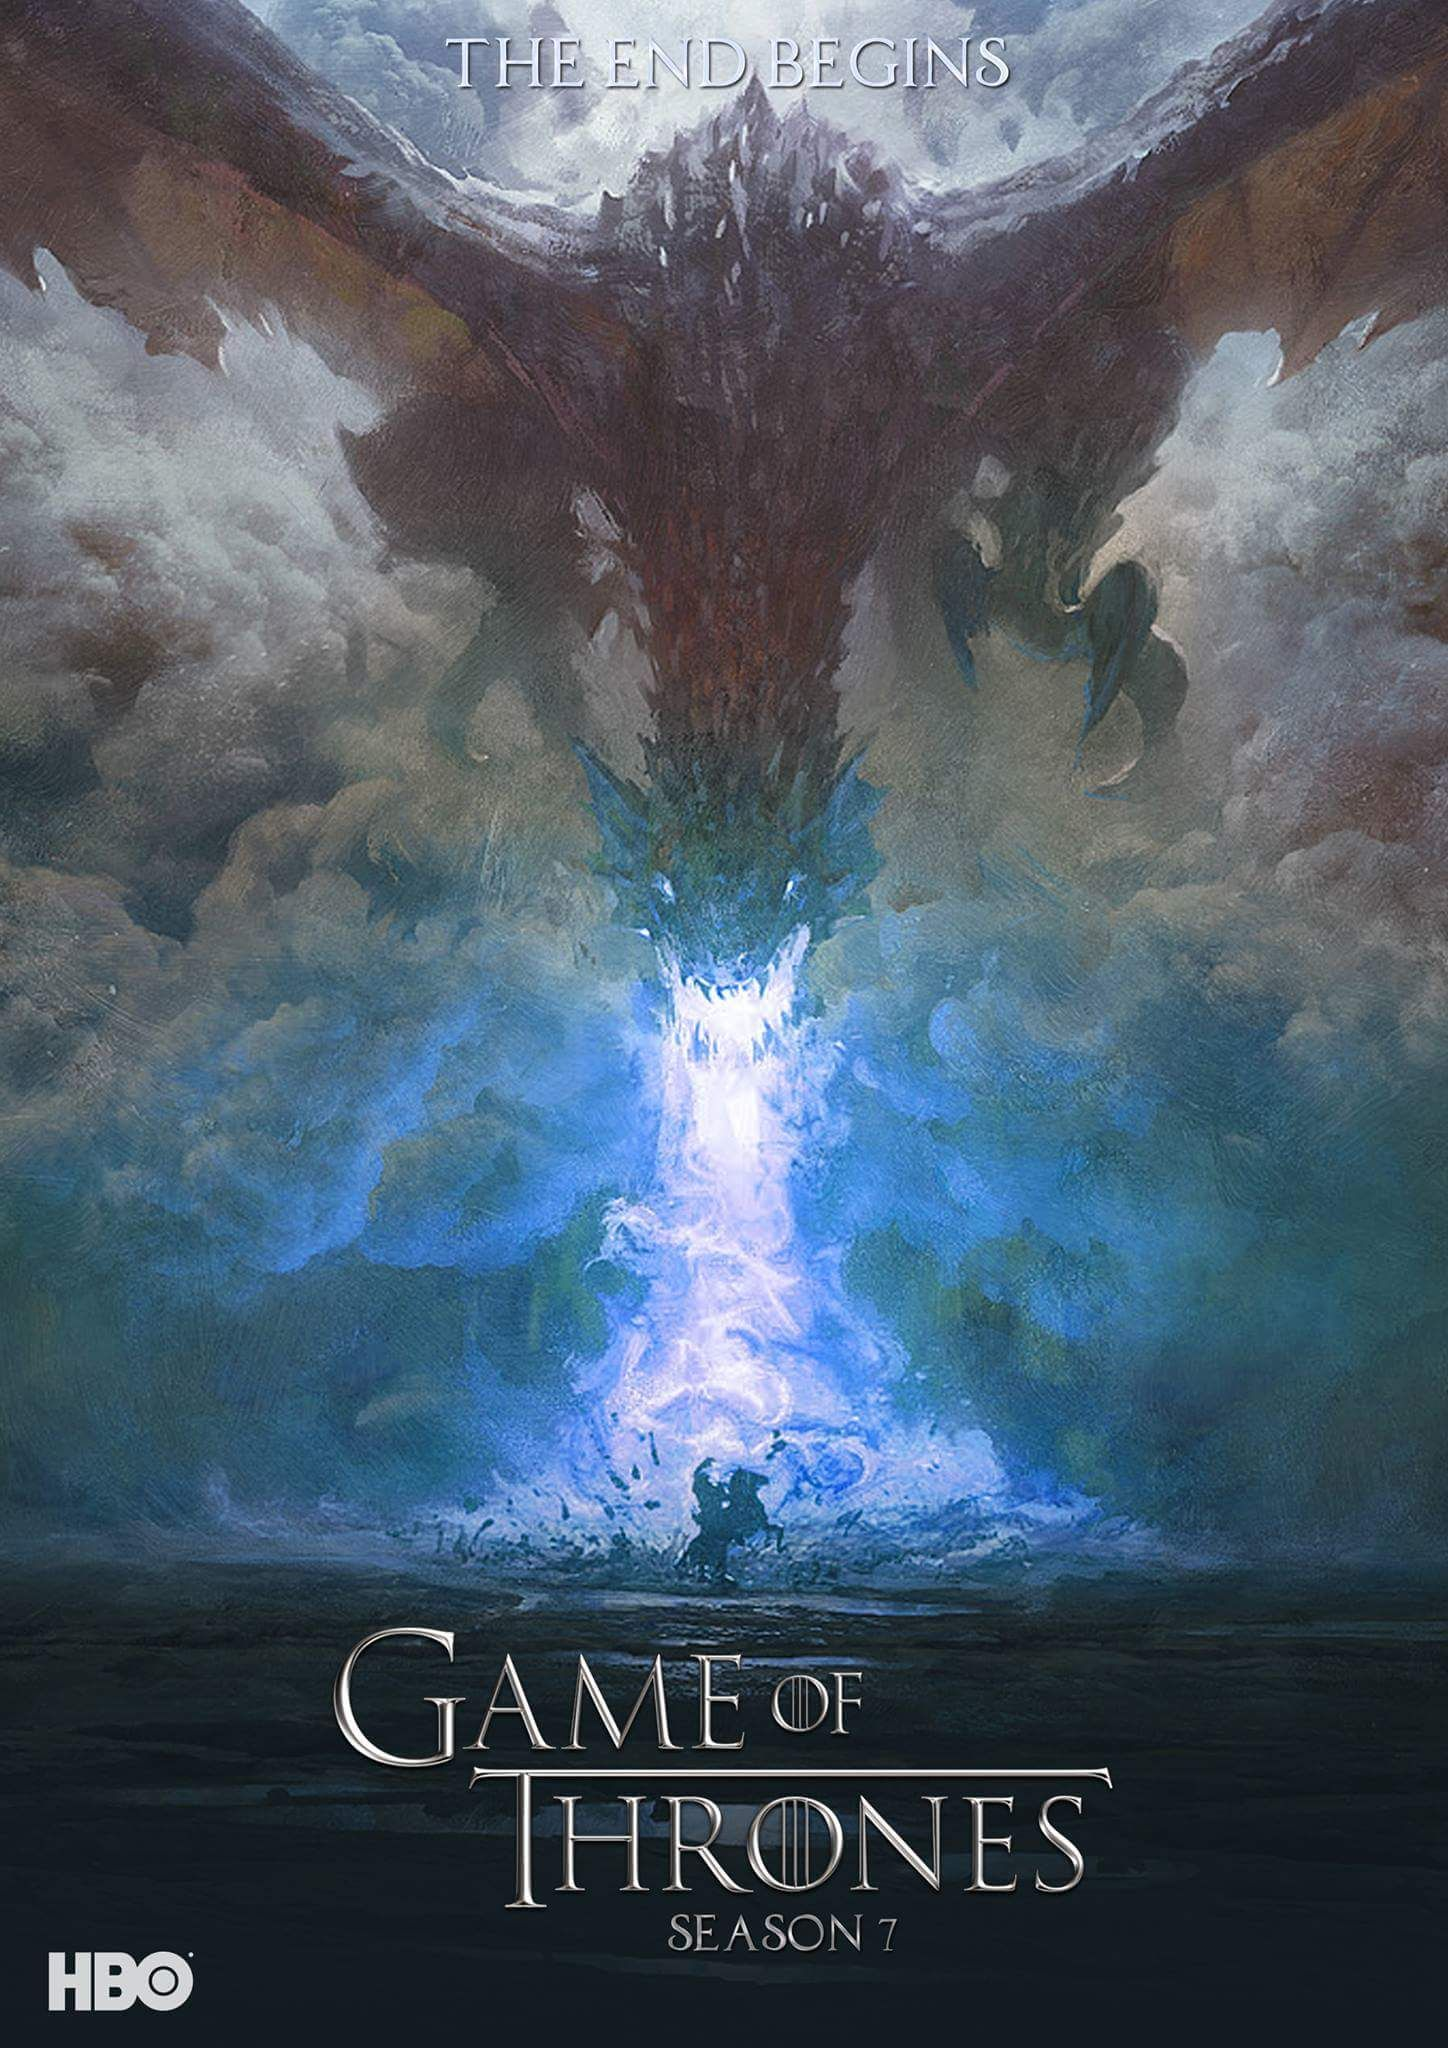 No Spoilers A Great Fan Made Poster For Season 7 Of Game Of Thrones Game Of Thrones Poster Game Of Thrones Tv Watch Game Of Thrones